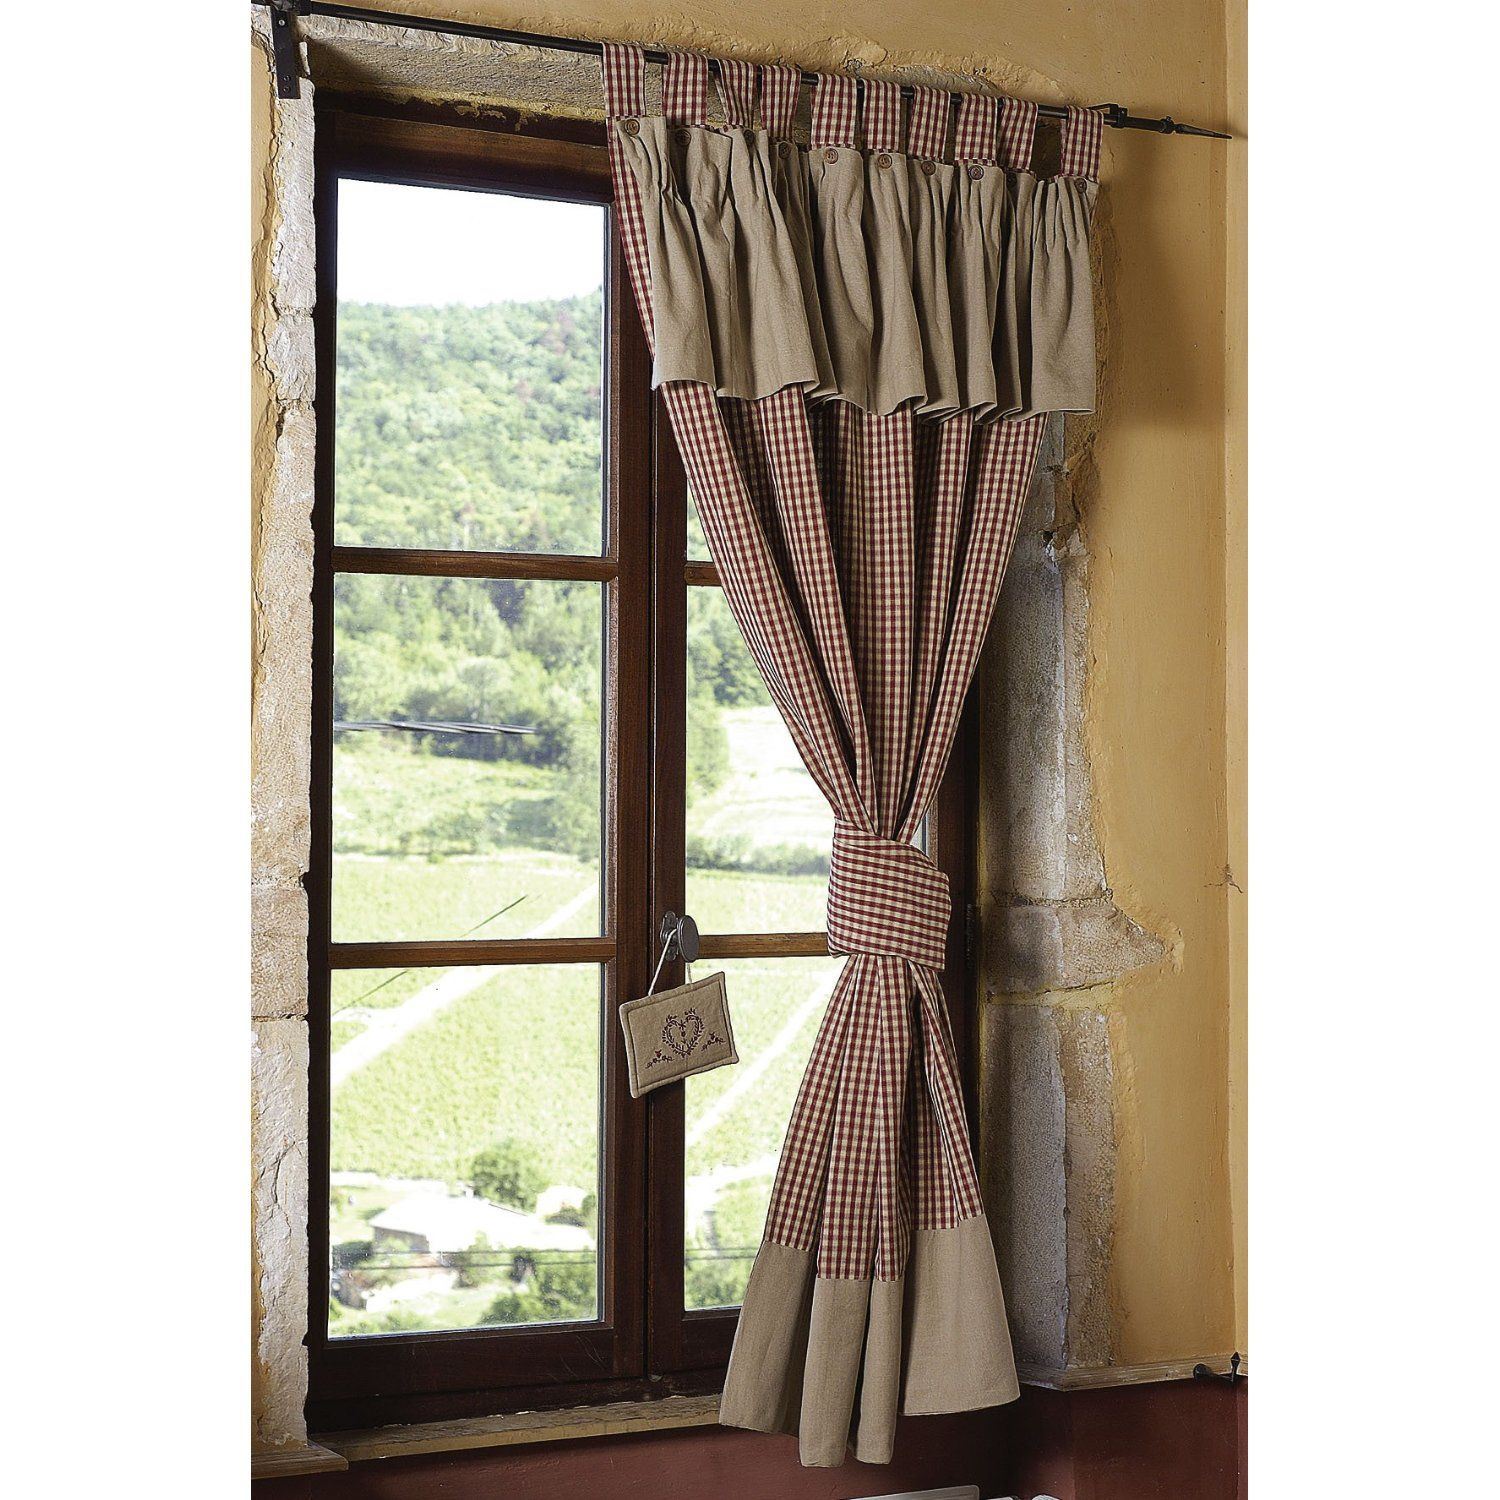 Landhaus Küchen Gardinen Gardinen Landhaus In 2019 Pinterest Curtains Window